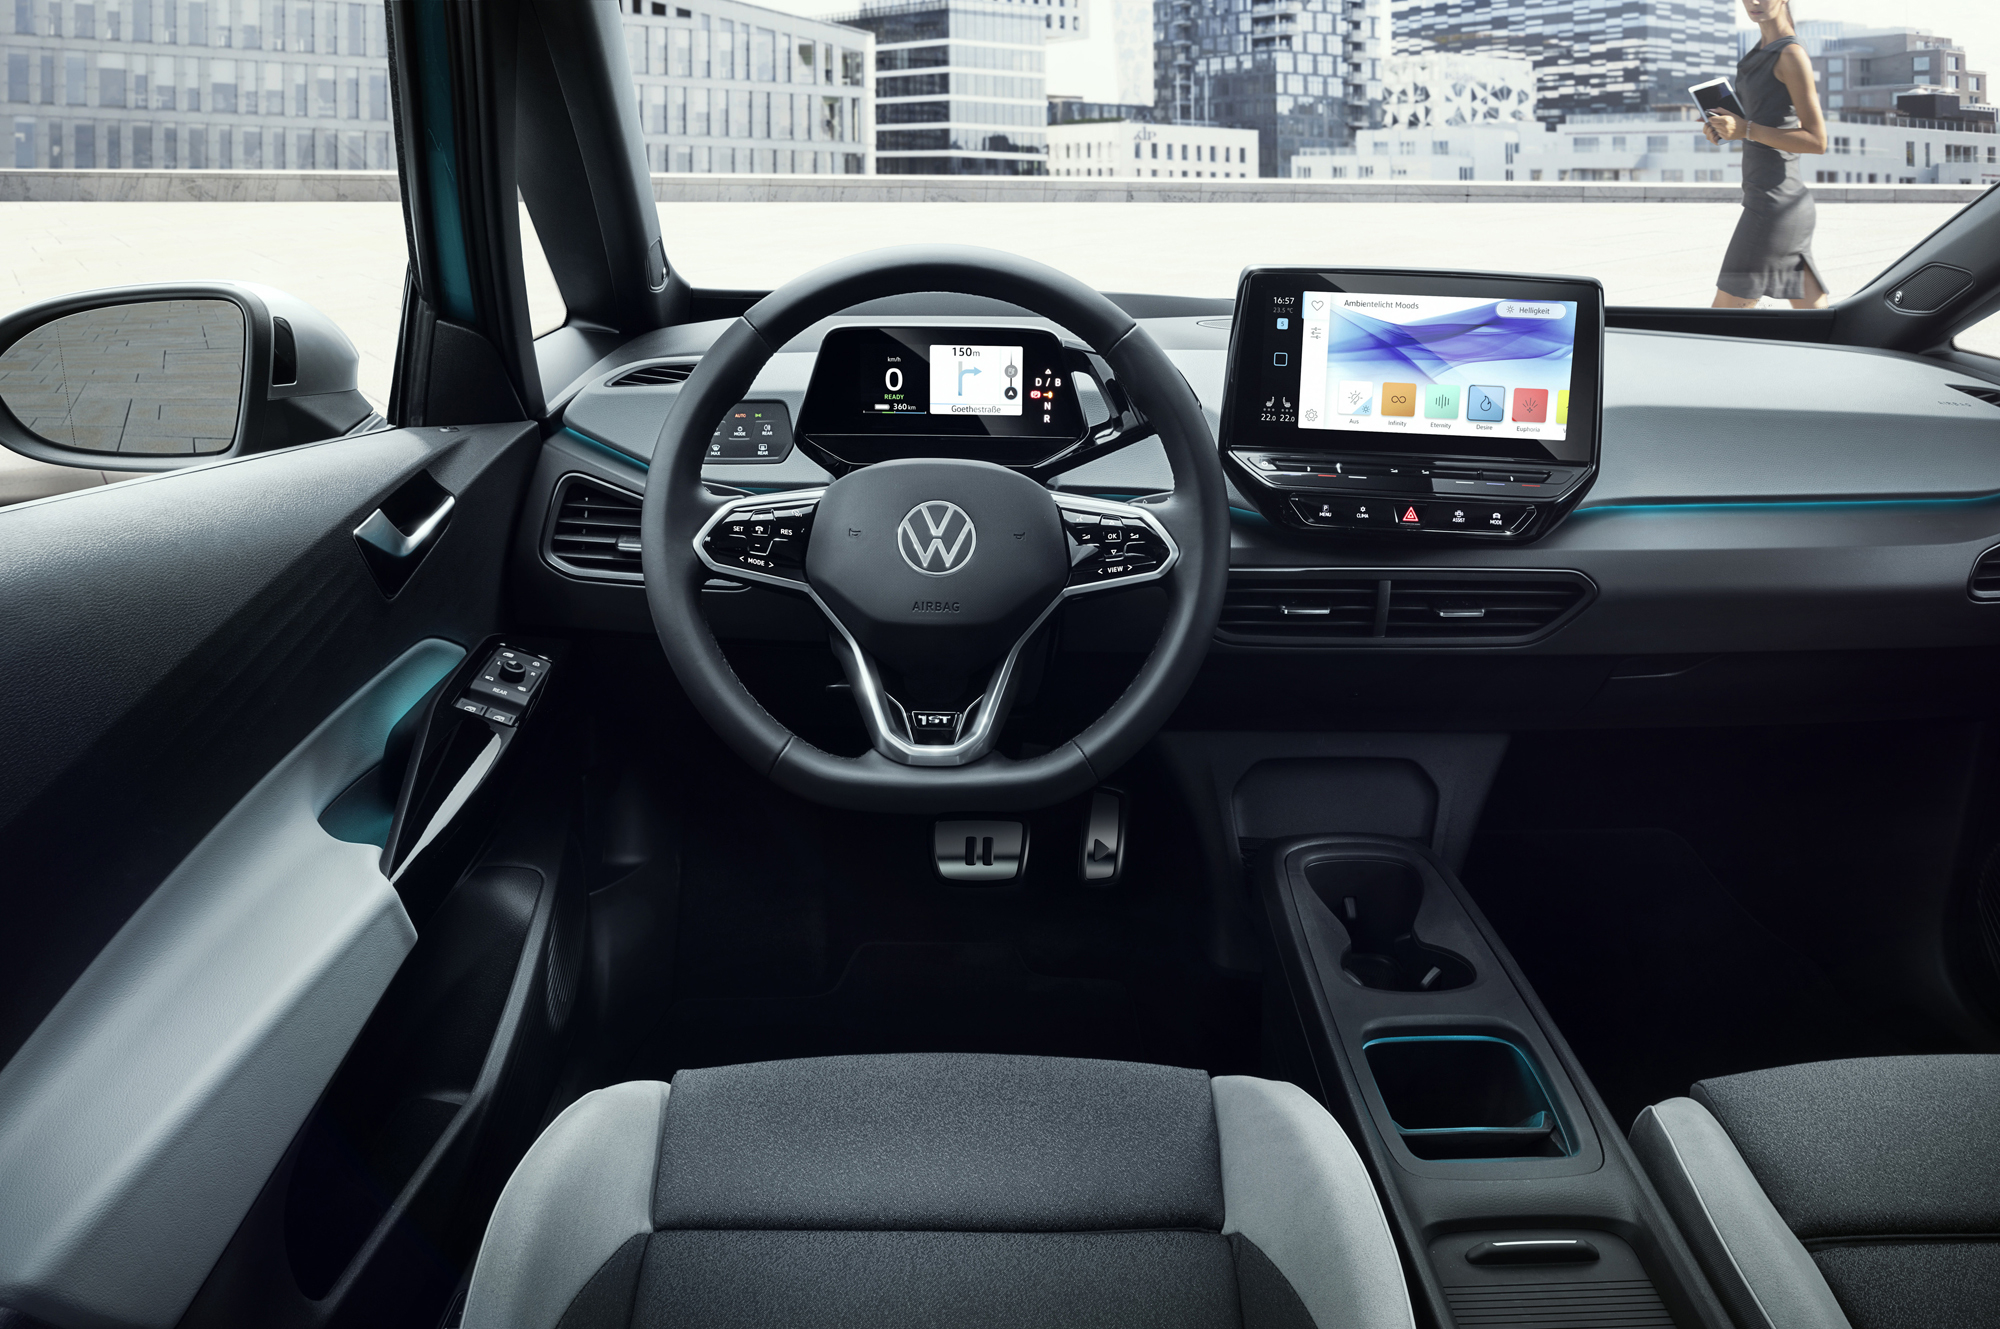 2022 Volkswagen Crafter Interior, Review, Price | 2021 VW